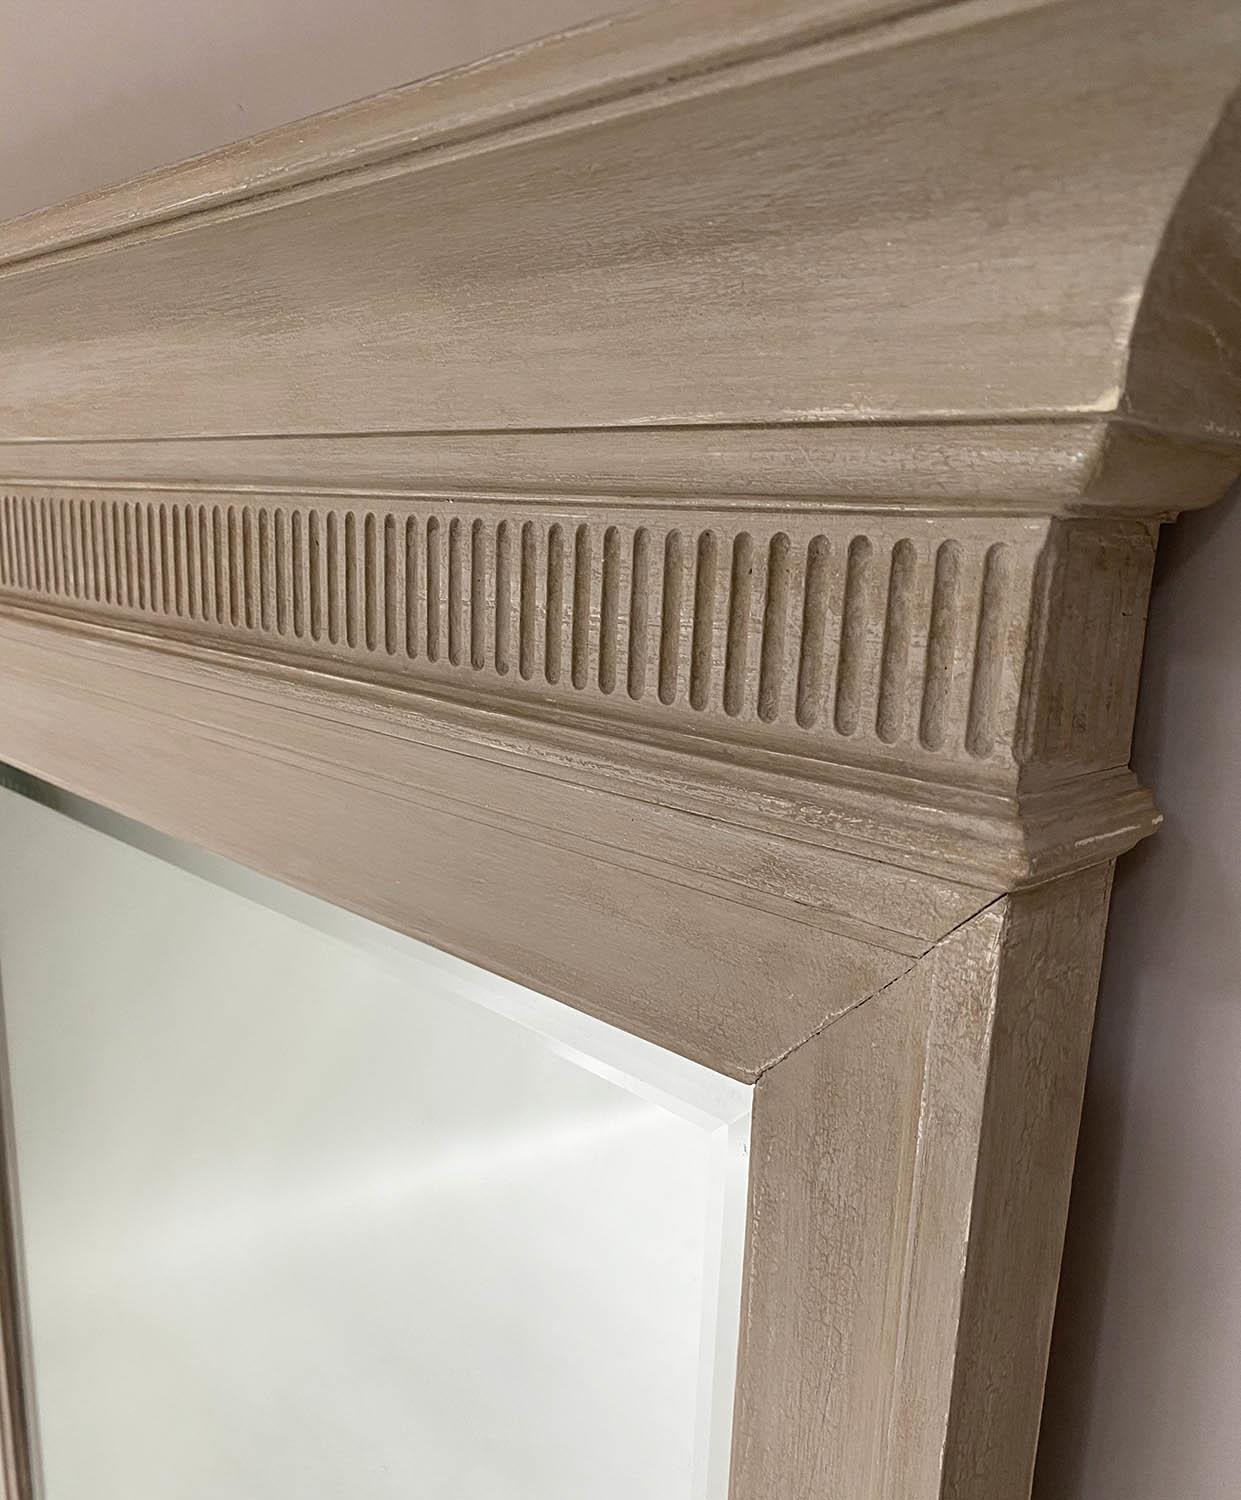 PIER MIRRORS, a pair, Regency style grey painted each with cornice, fluted frieze and bevelled - Image 3 of 6